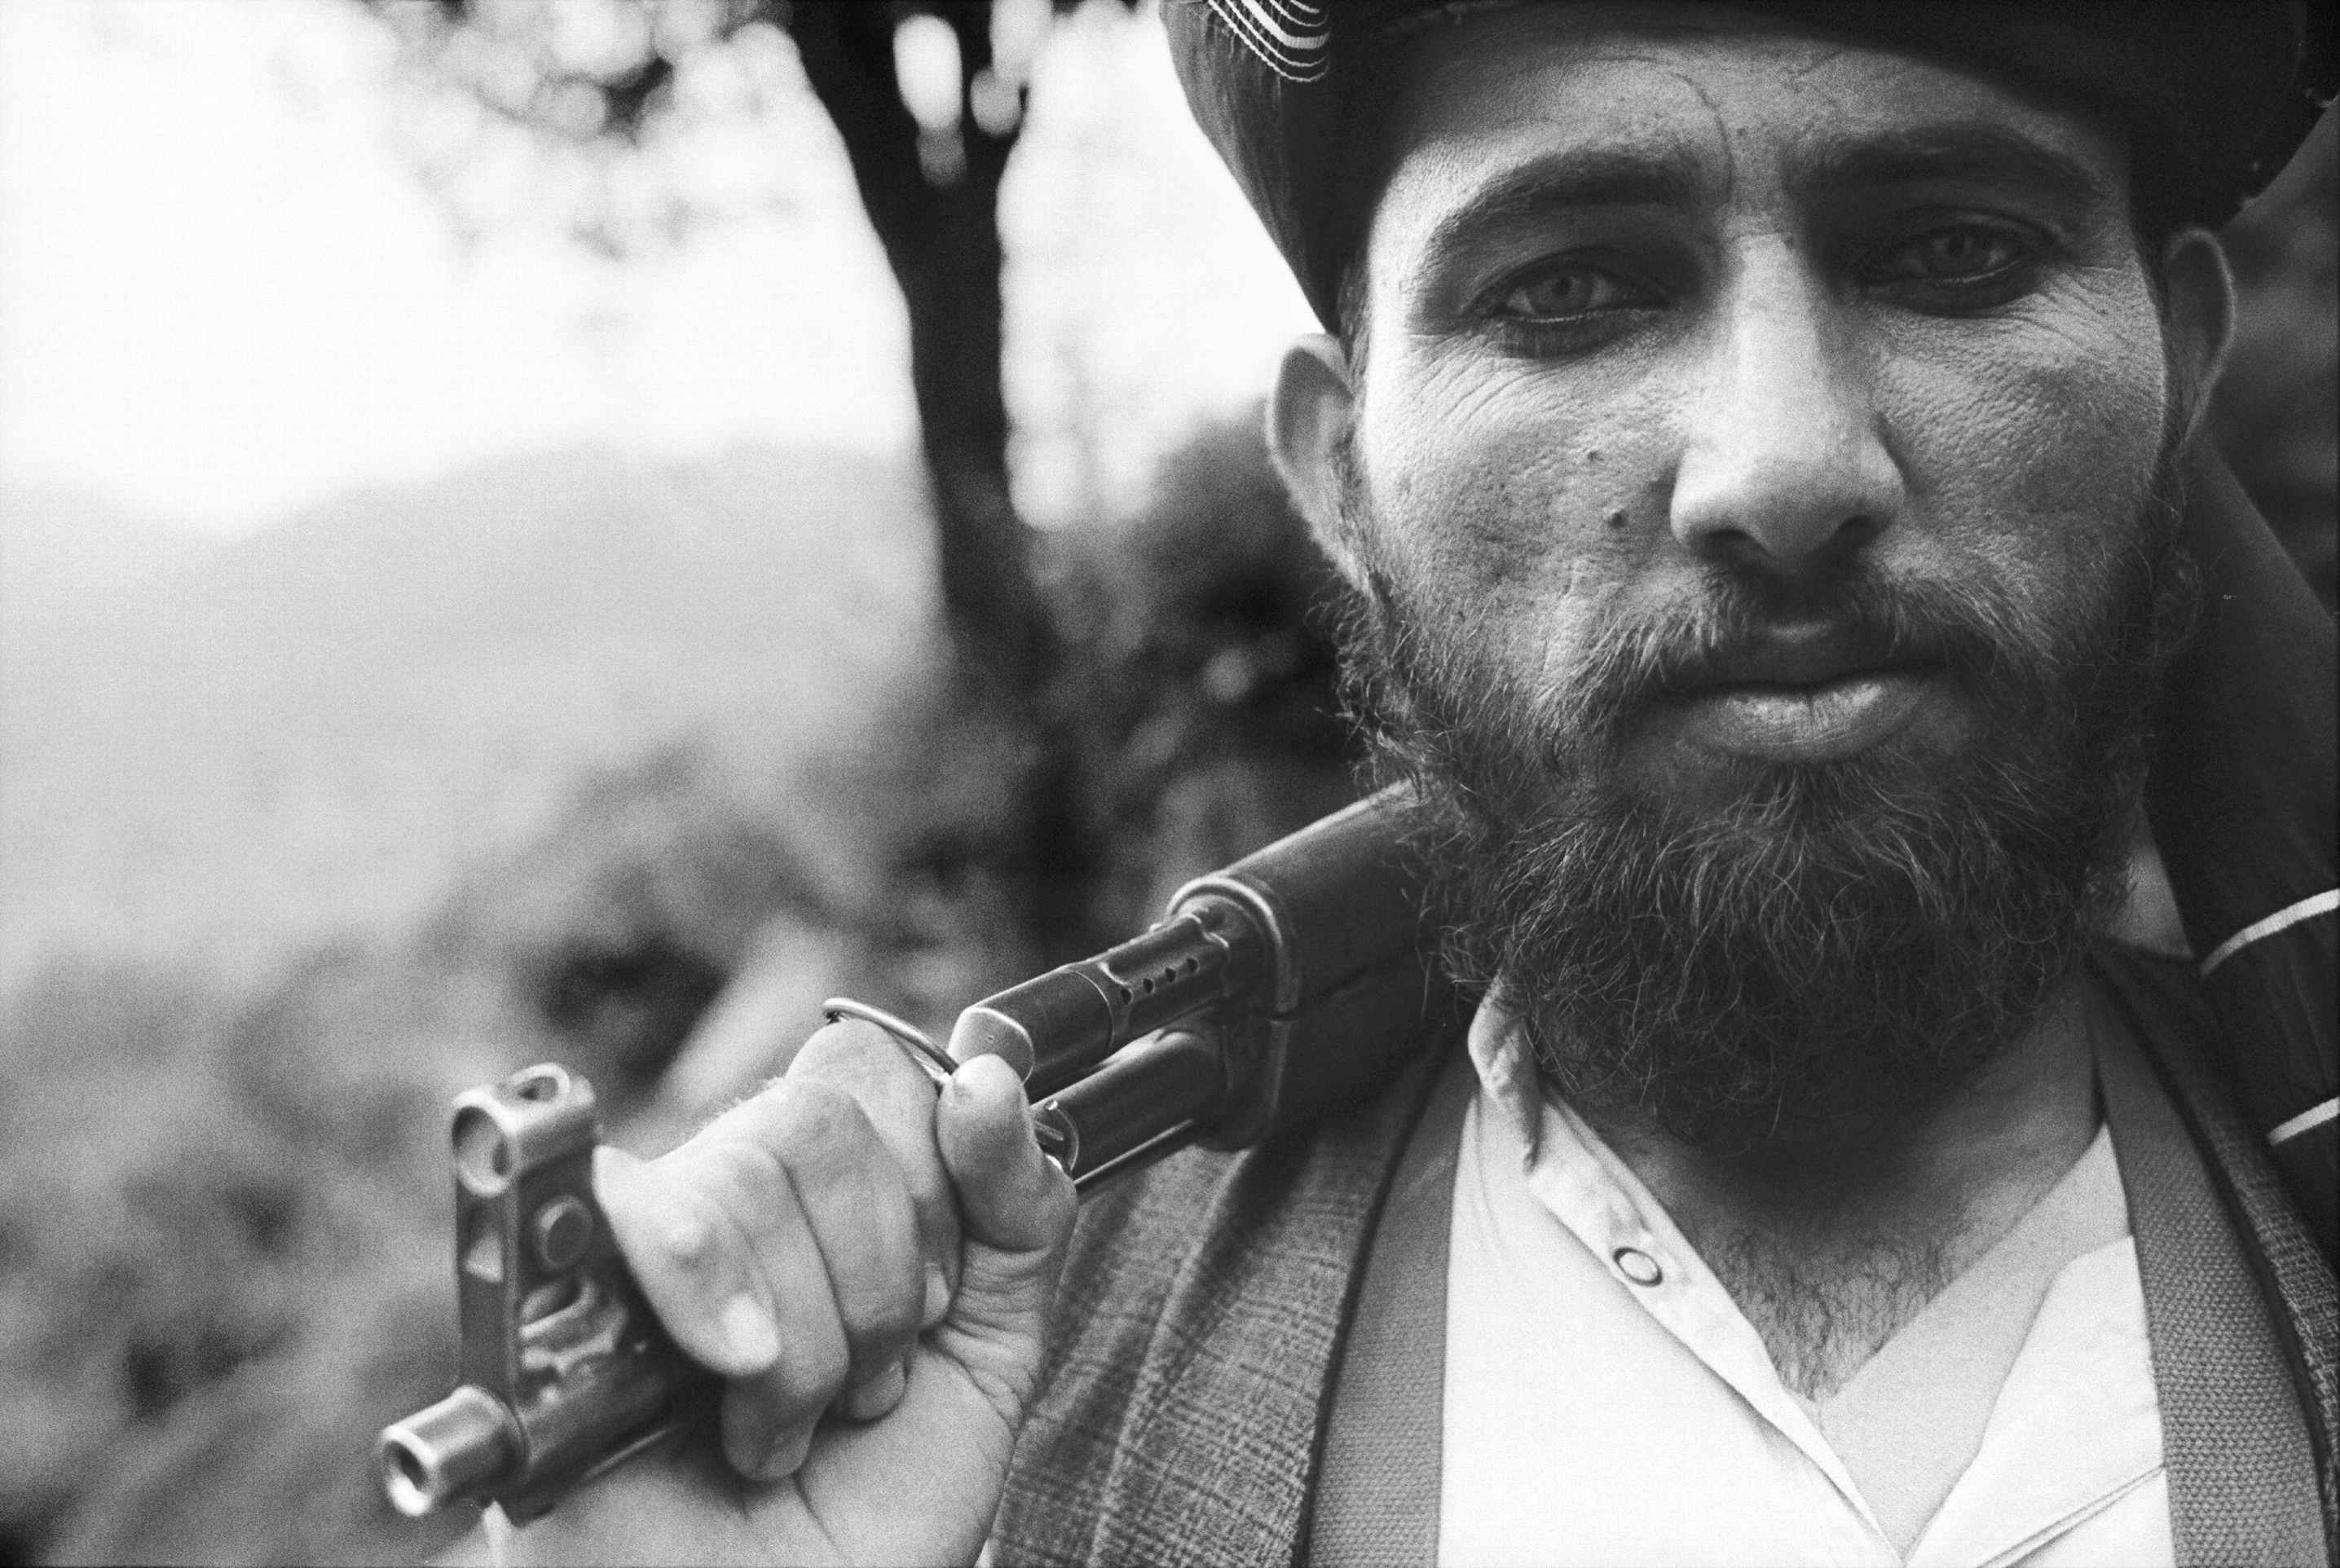 Taliban warrior. Photo: H.C. Jacobsen, 1997